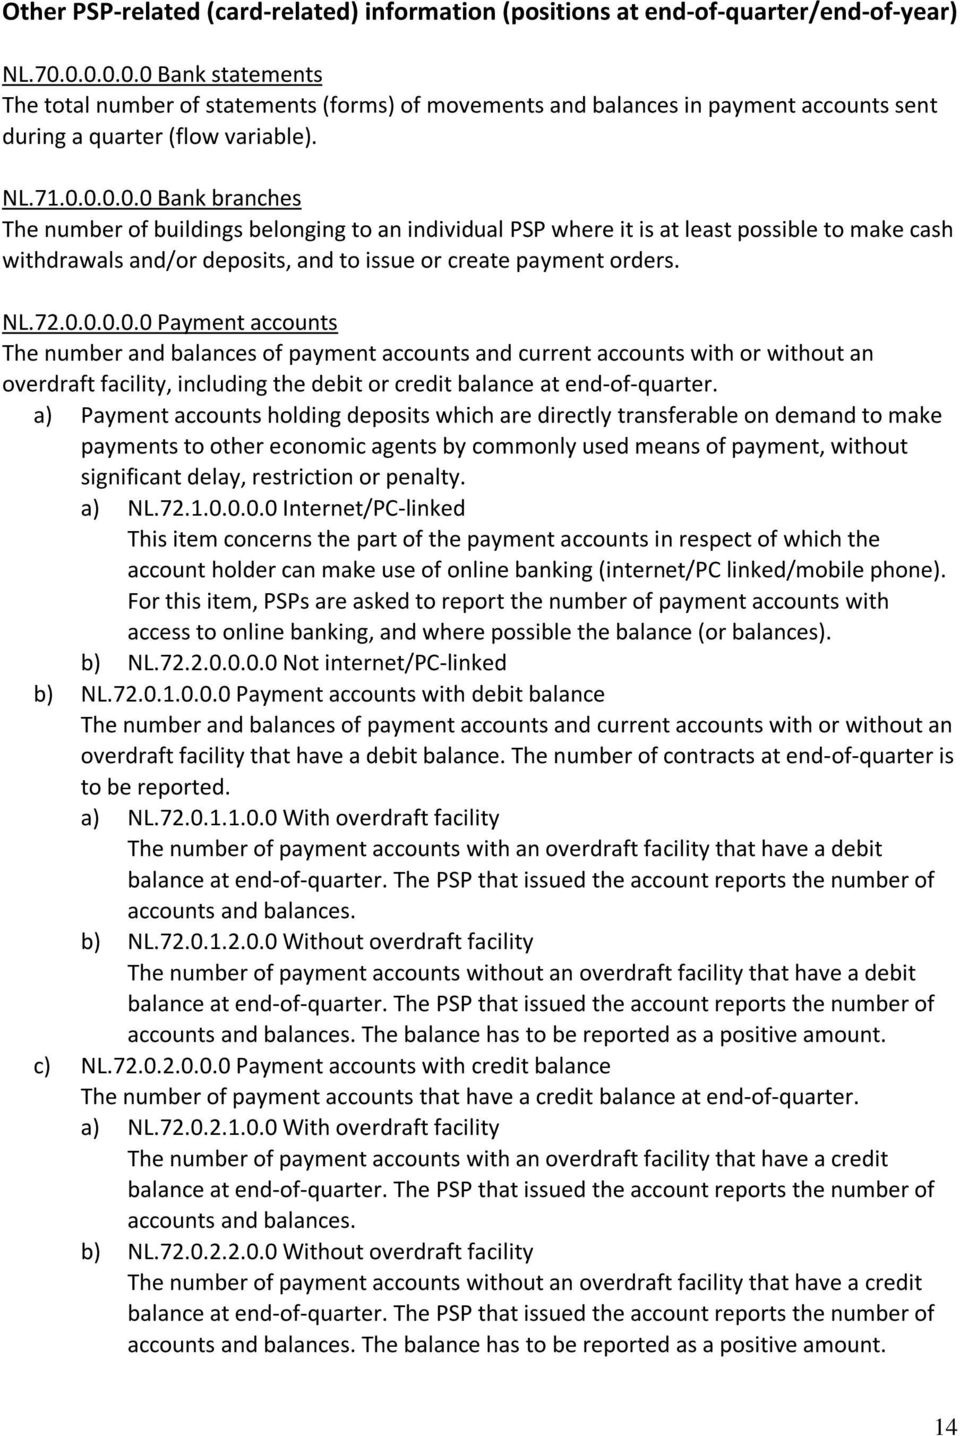 NL.72.0.0.0.0.0 Payment accounts The number and balances of payment accounts and current accounts with or without an overdraft facility, including the debit or credit balance at end-of-quarter.